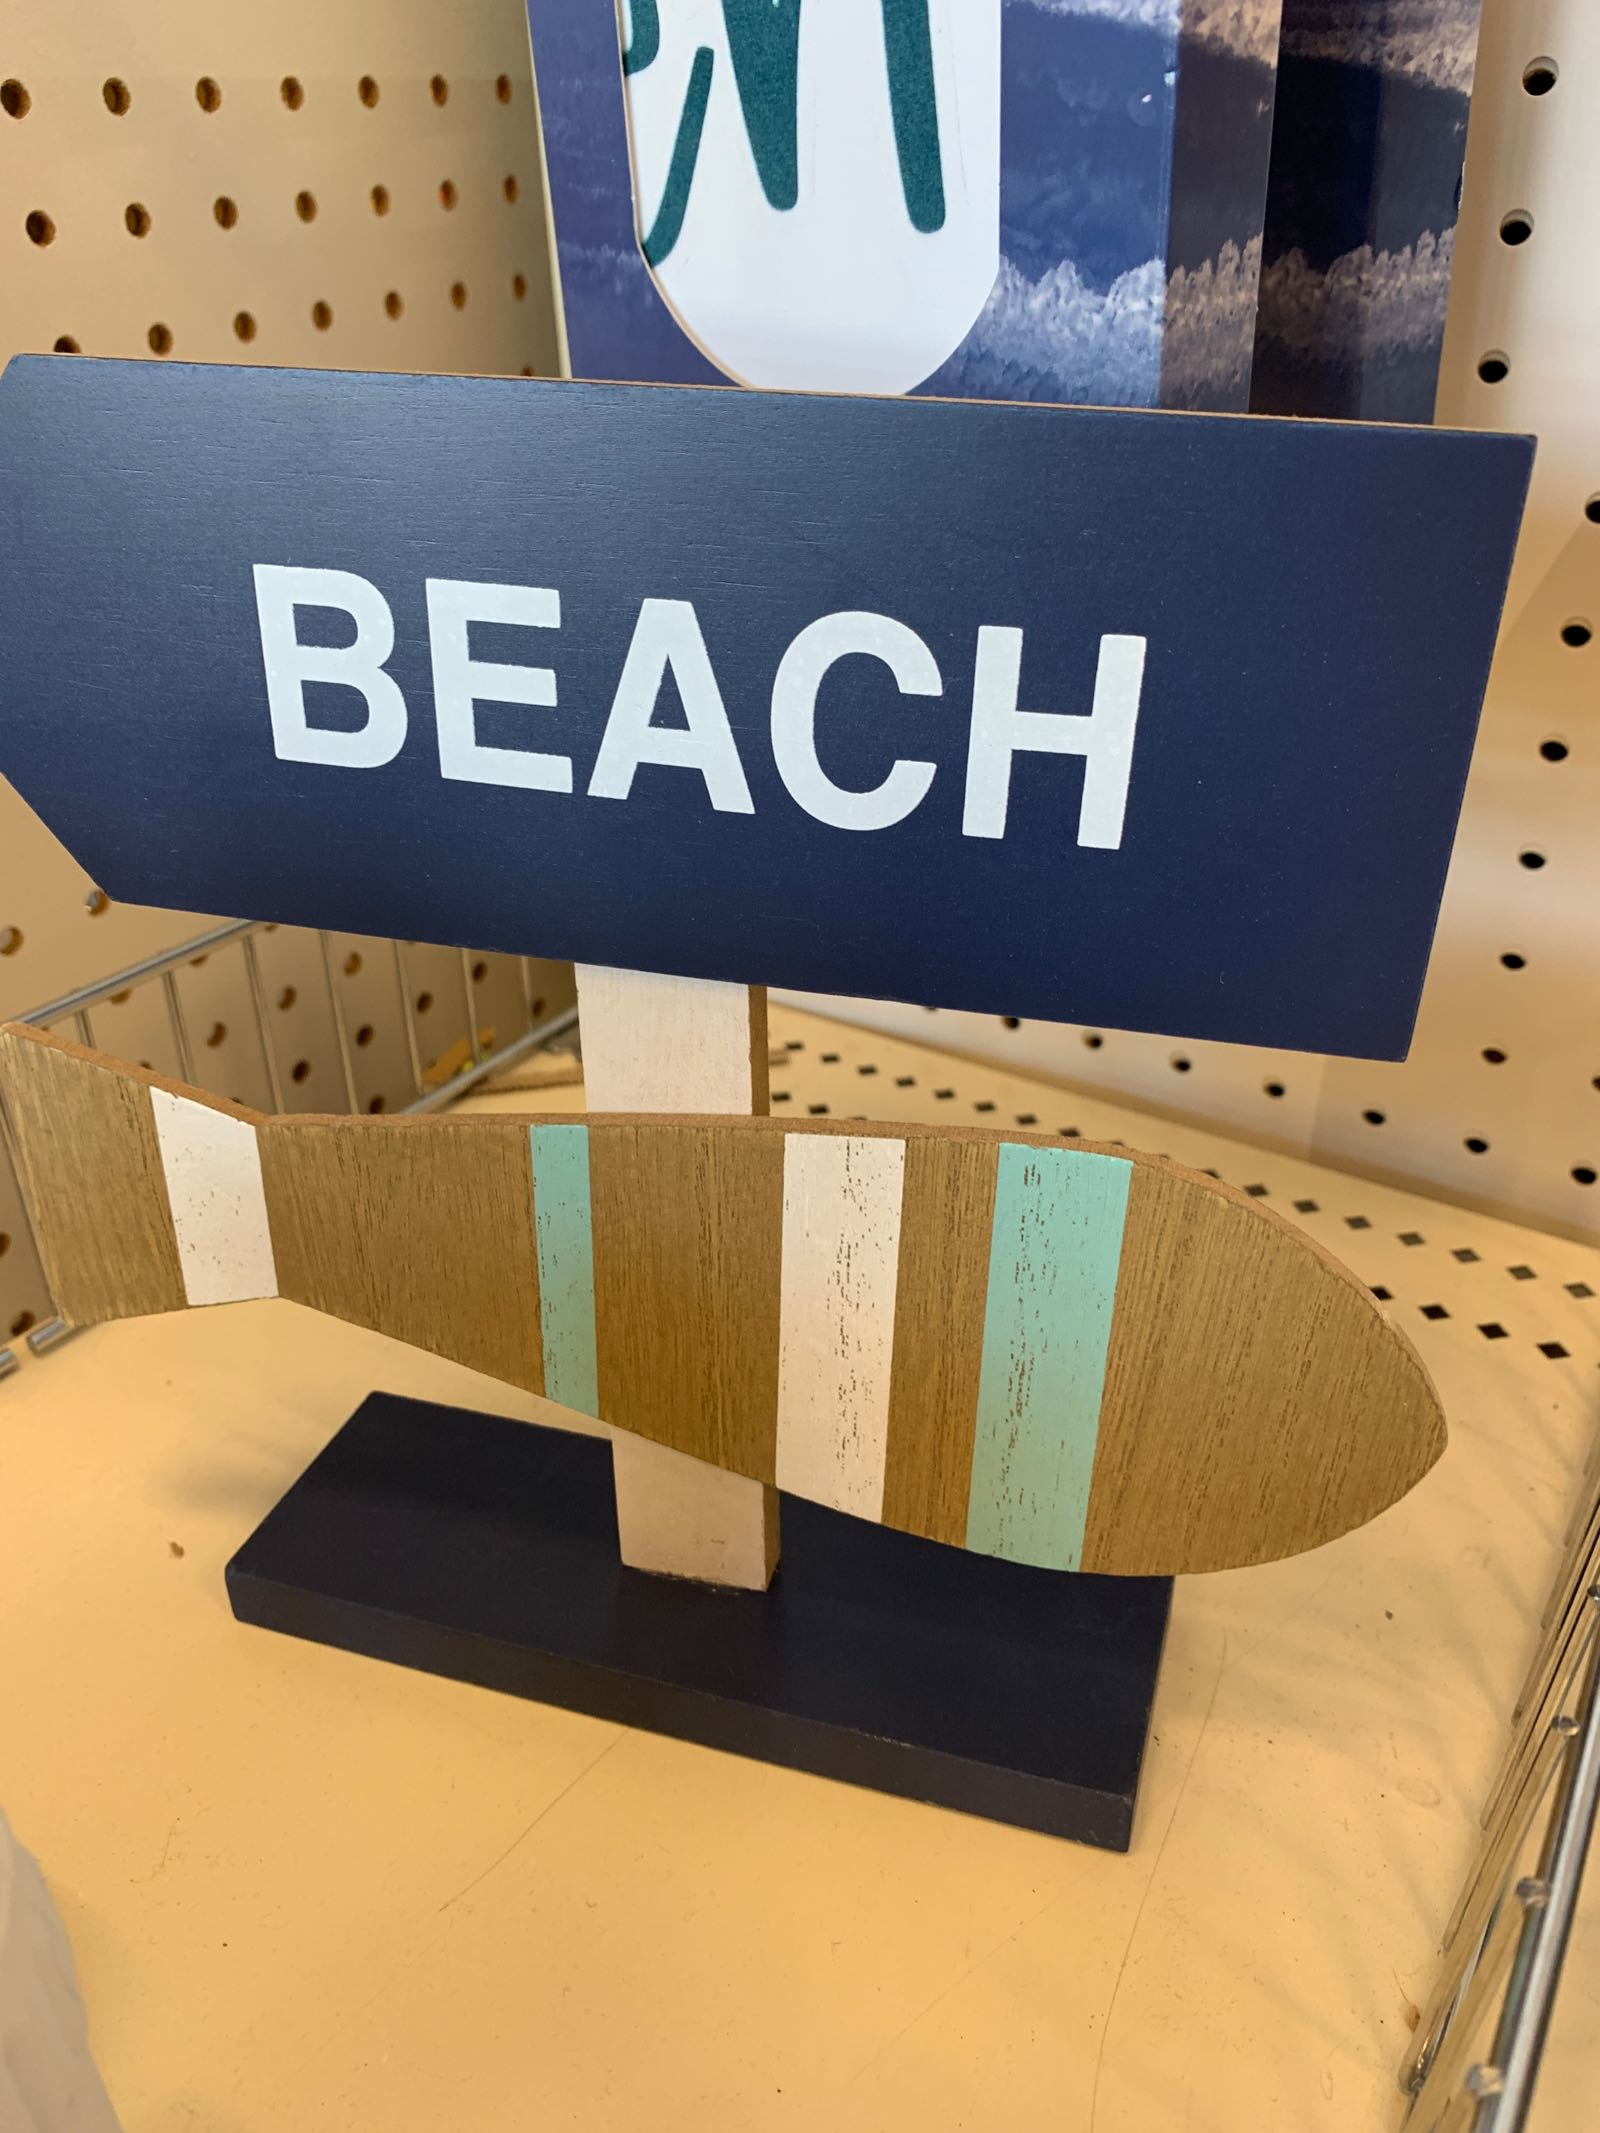 Cute nautical decor at Target in the dollar spot!